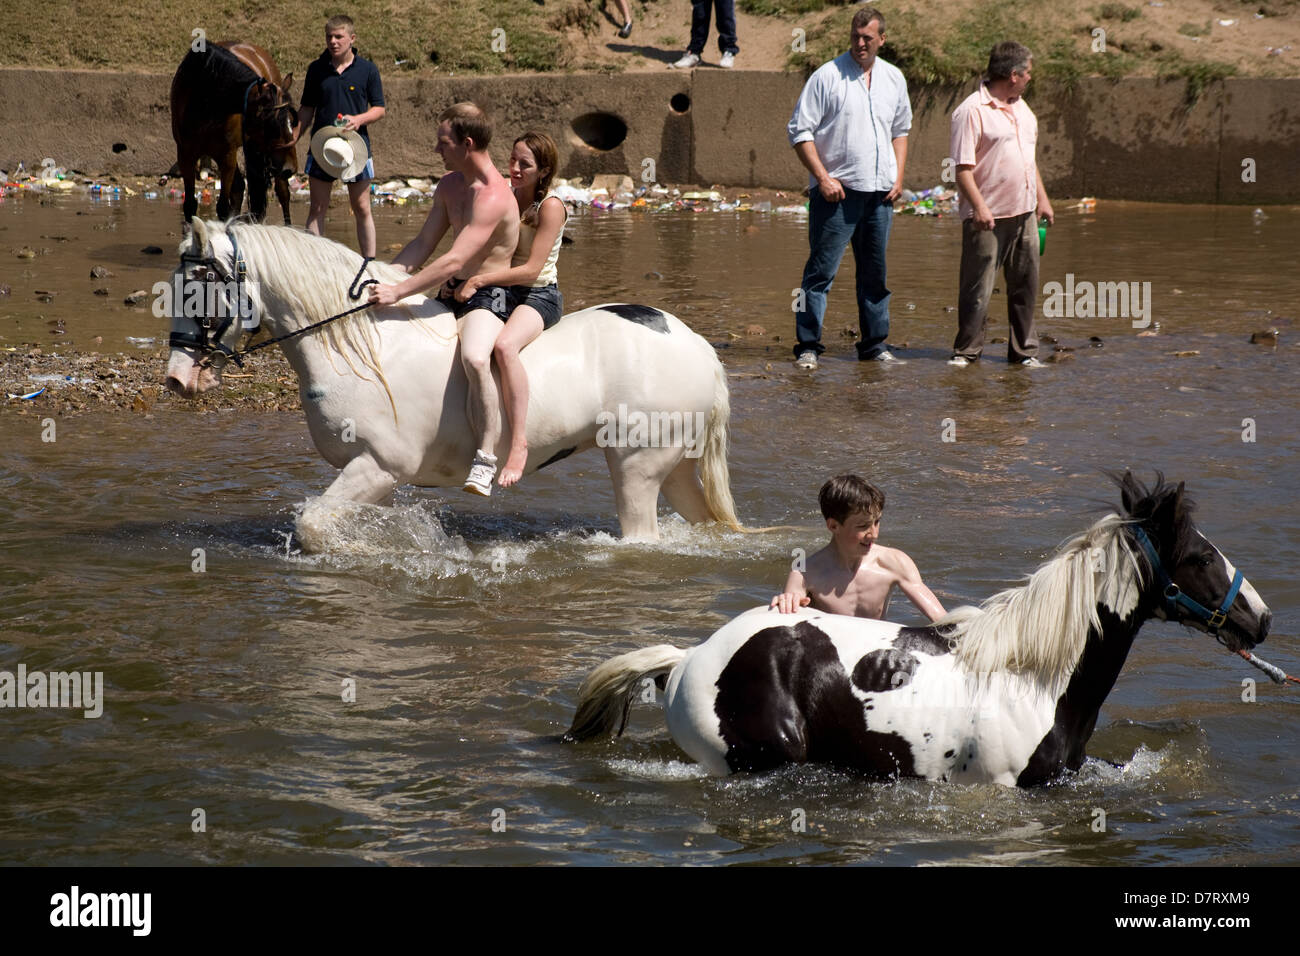 People and horses in the river at the Appleby Fair, an annual gathering of Gypsy and Traveller communities in Cumbria, Stock Photo